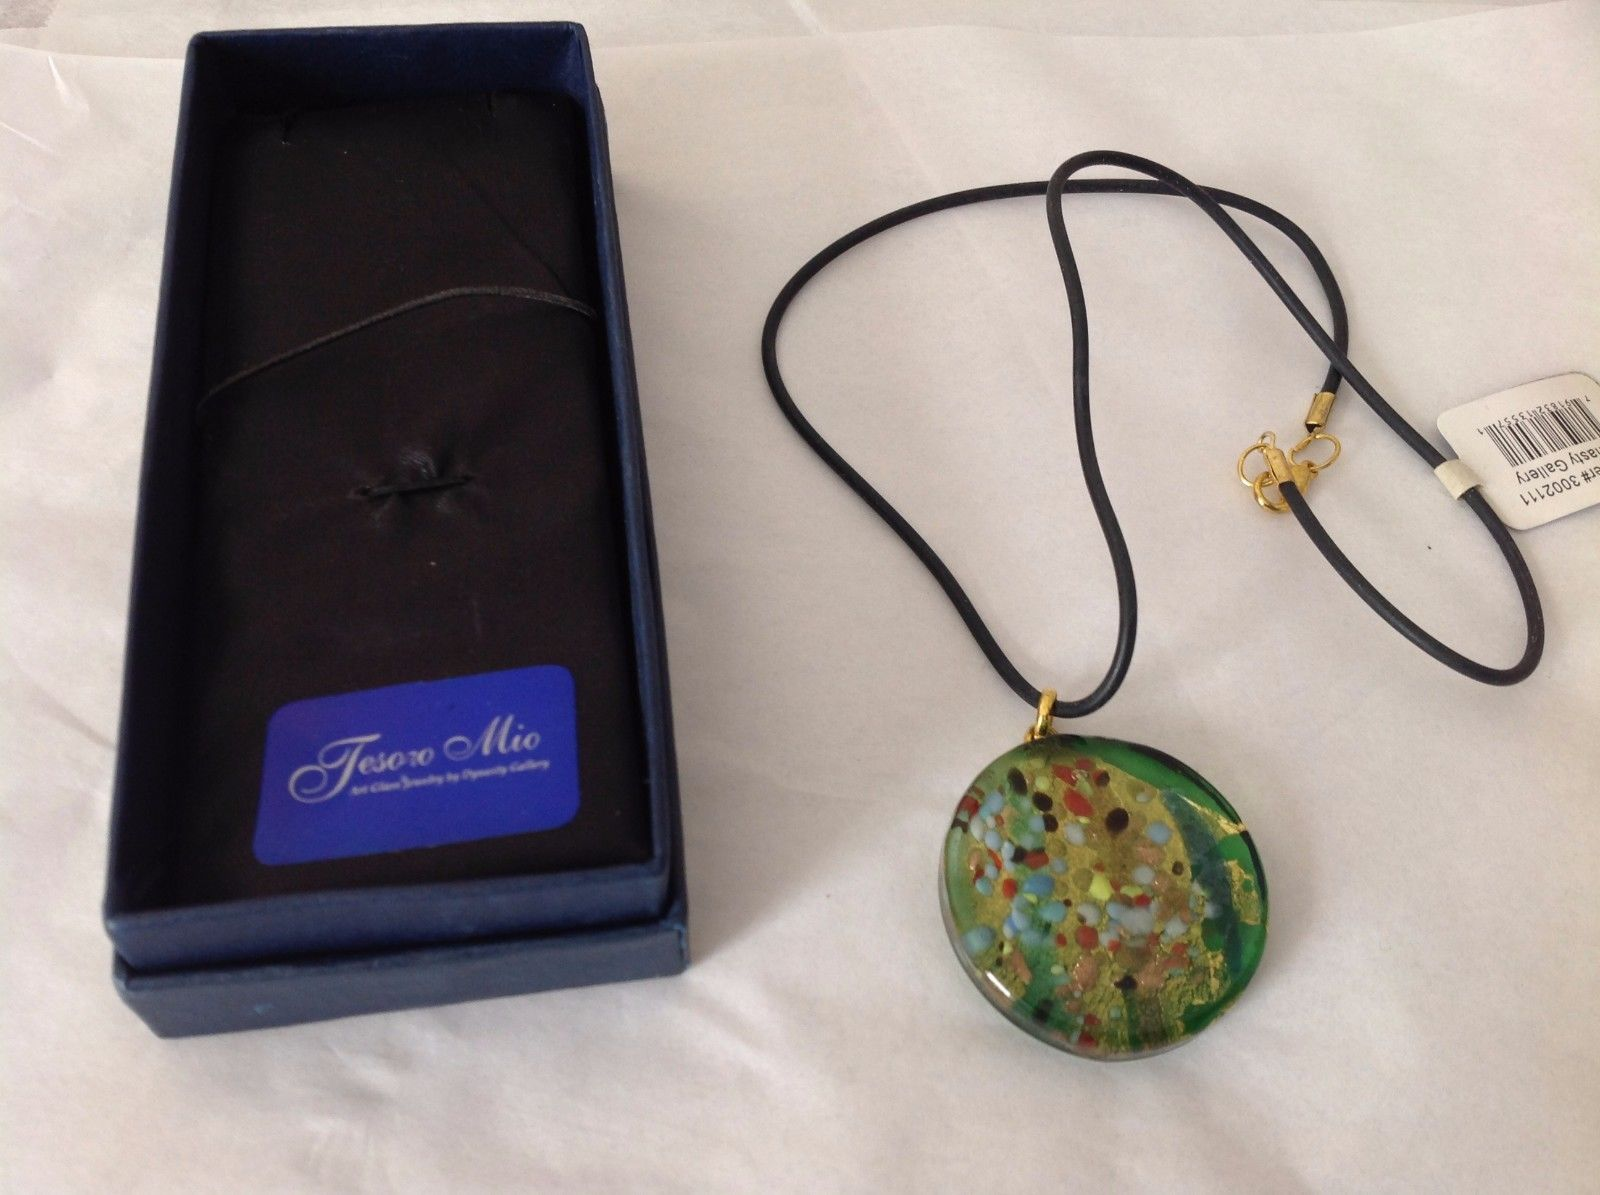 NEW Tesoro Mio Art Glass Jewelry Necklace Black Cord Sliding Pendant Multicolor